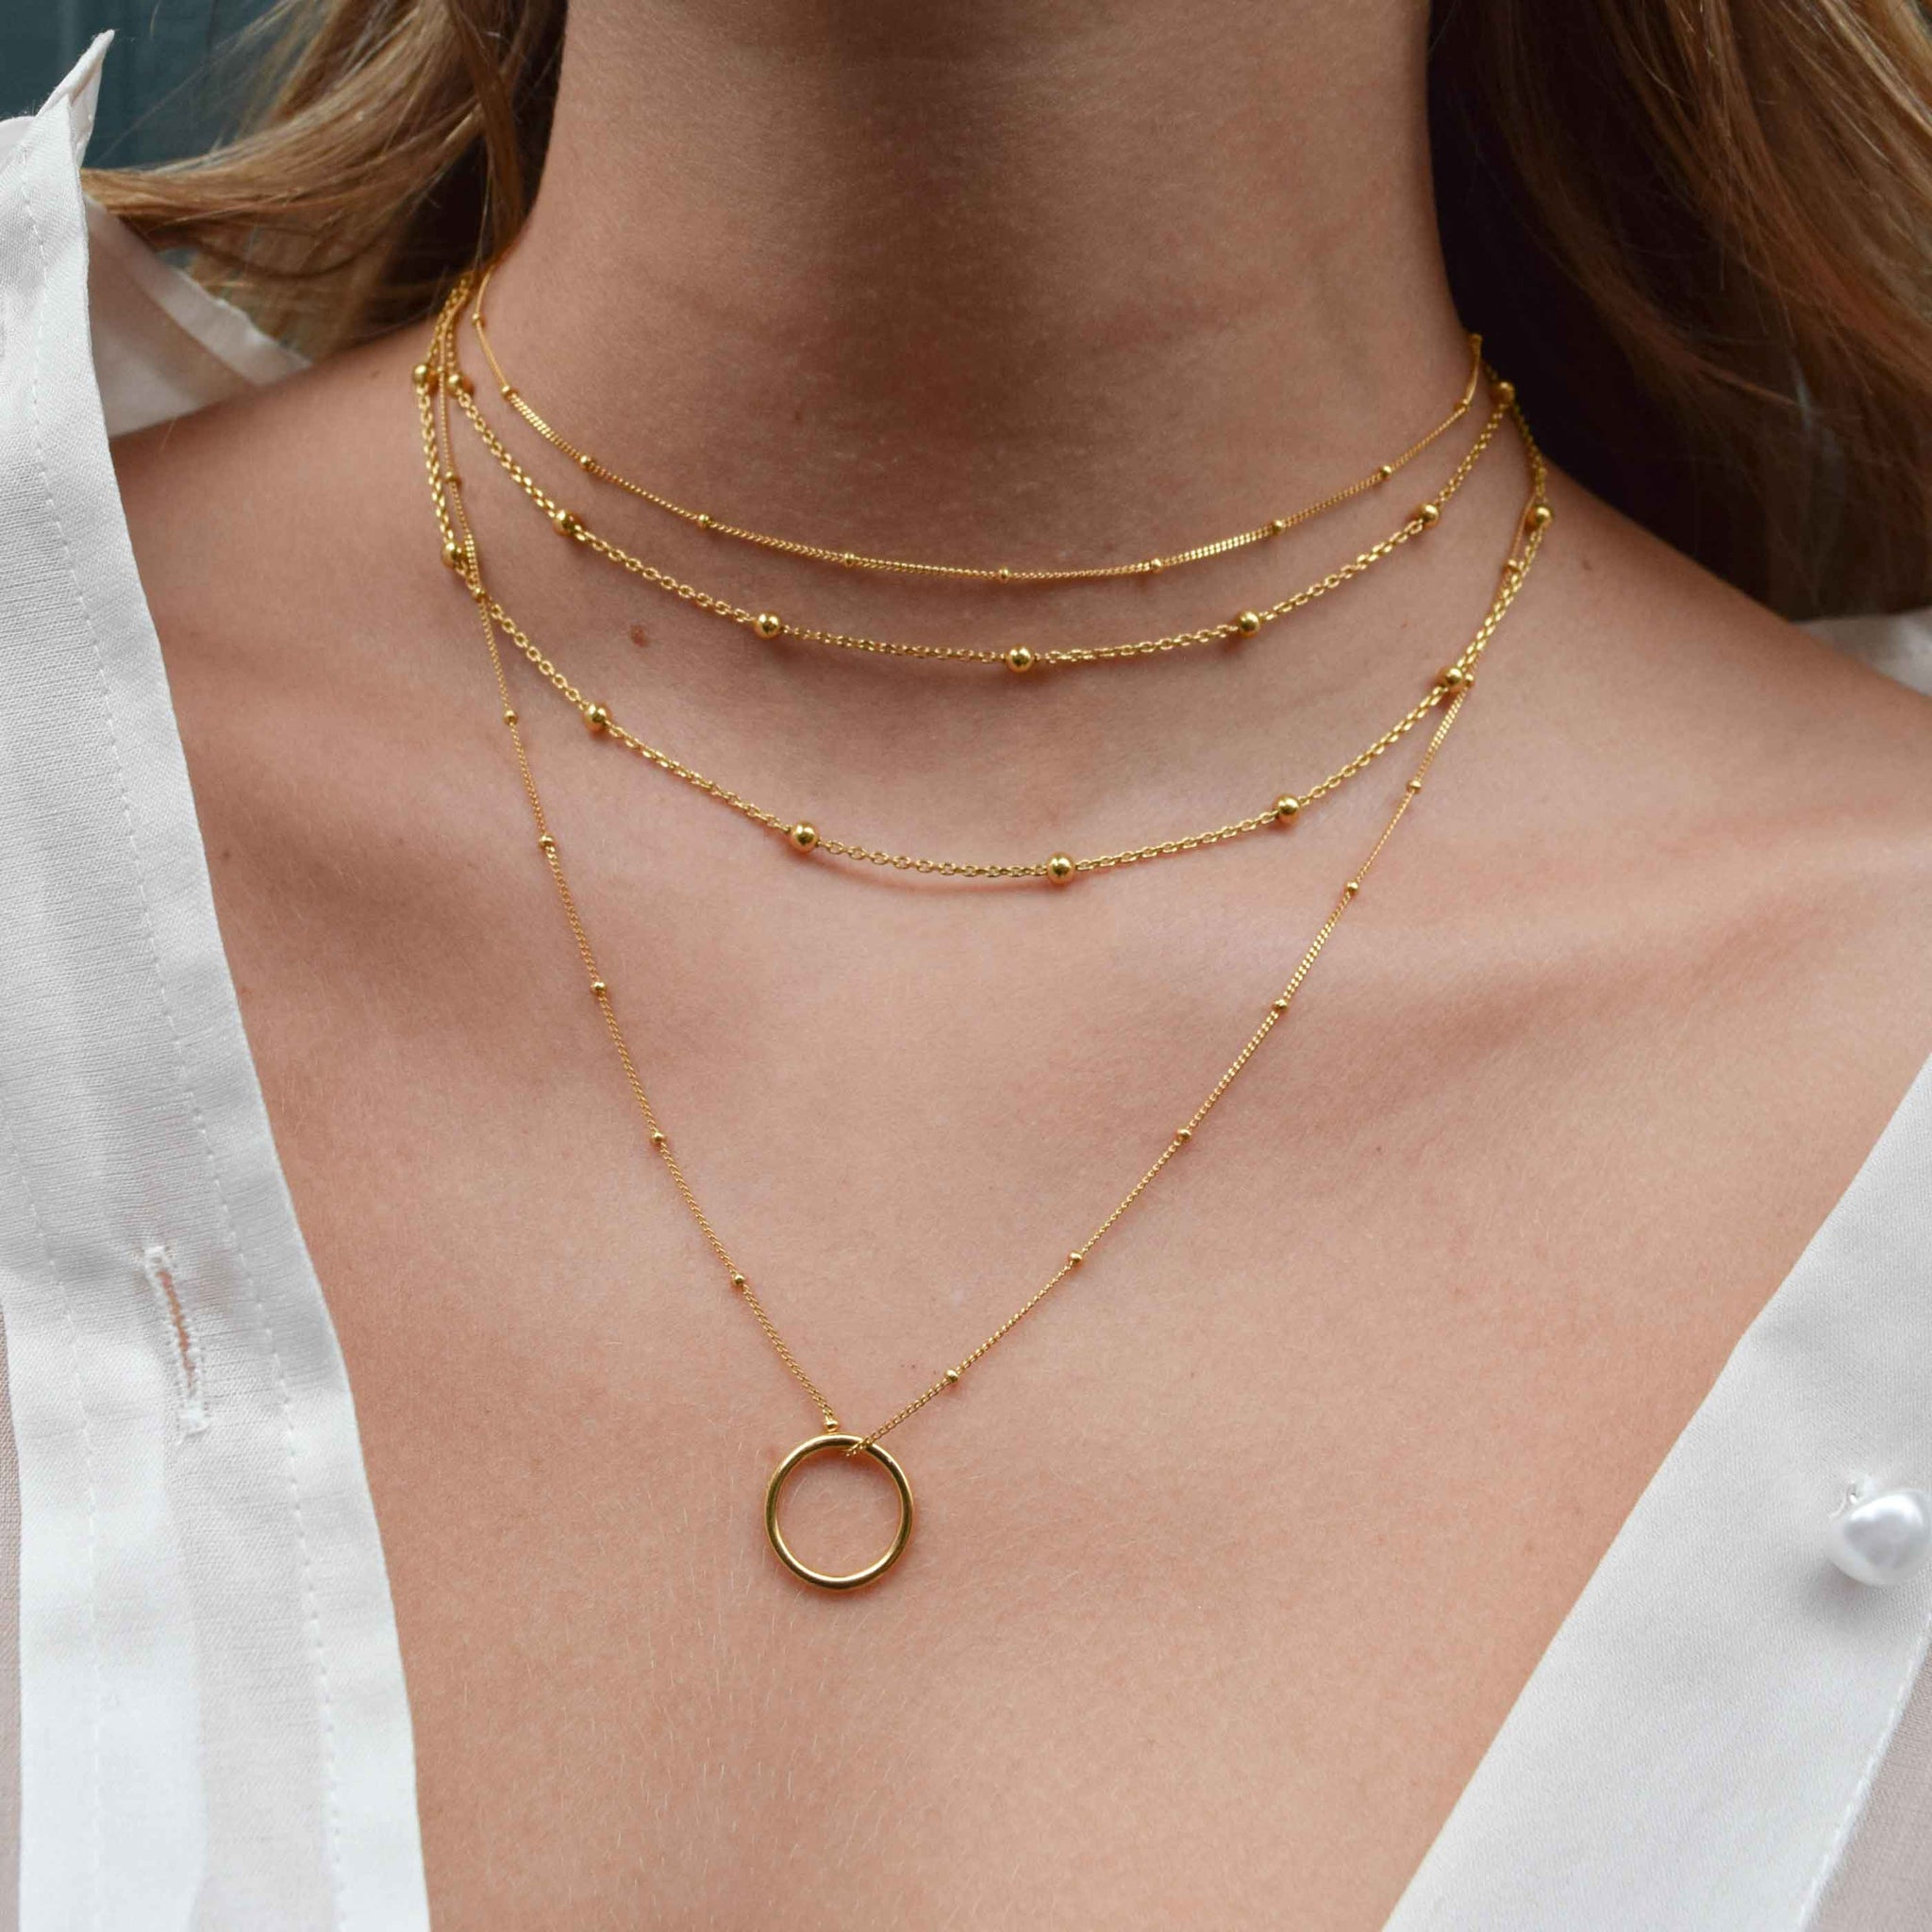 Basic Halo Pendant Necklace in Gold worn with beaded chokers